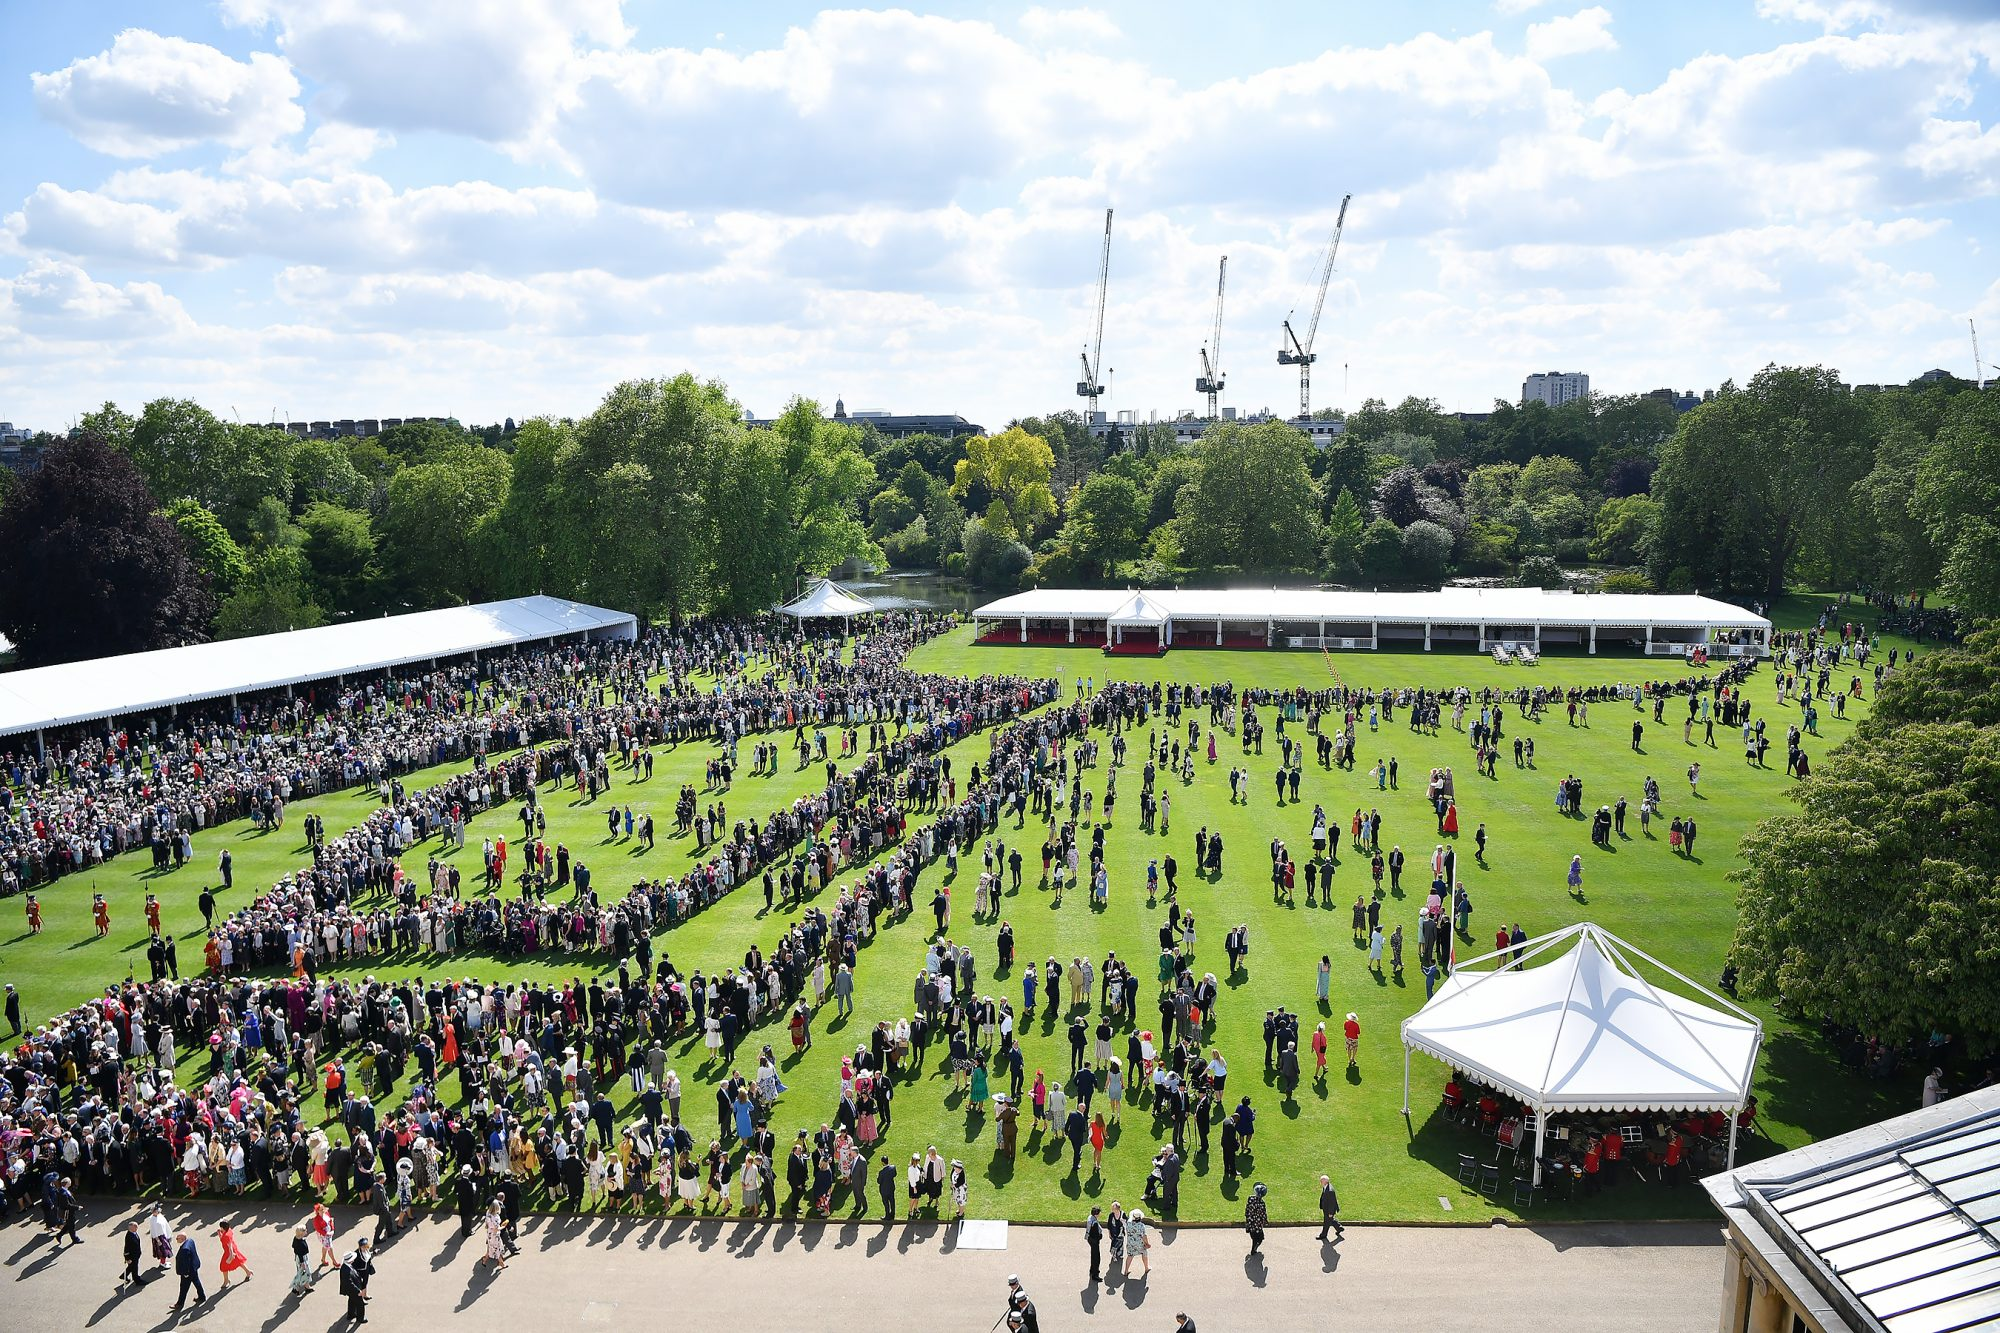 Guests attend a garden party in teh grounds of Buckingham Palace in central London on May 21, 2019